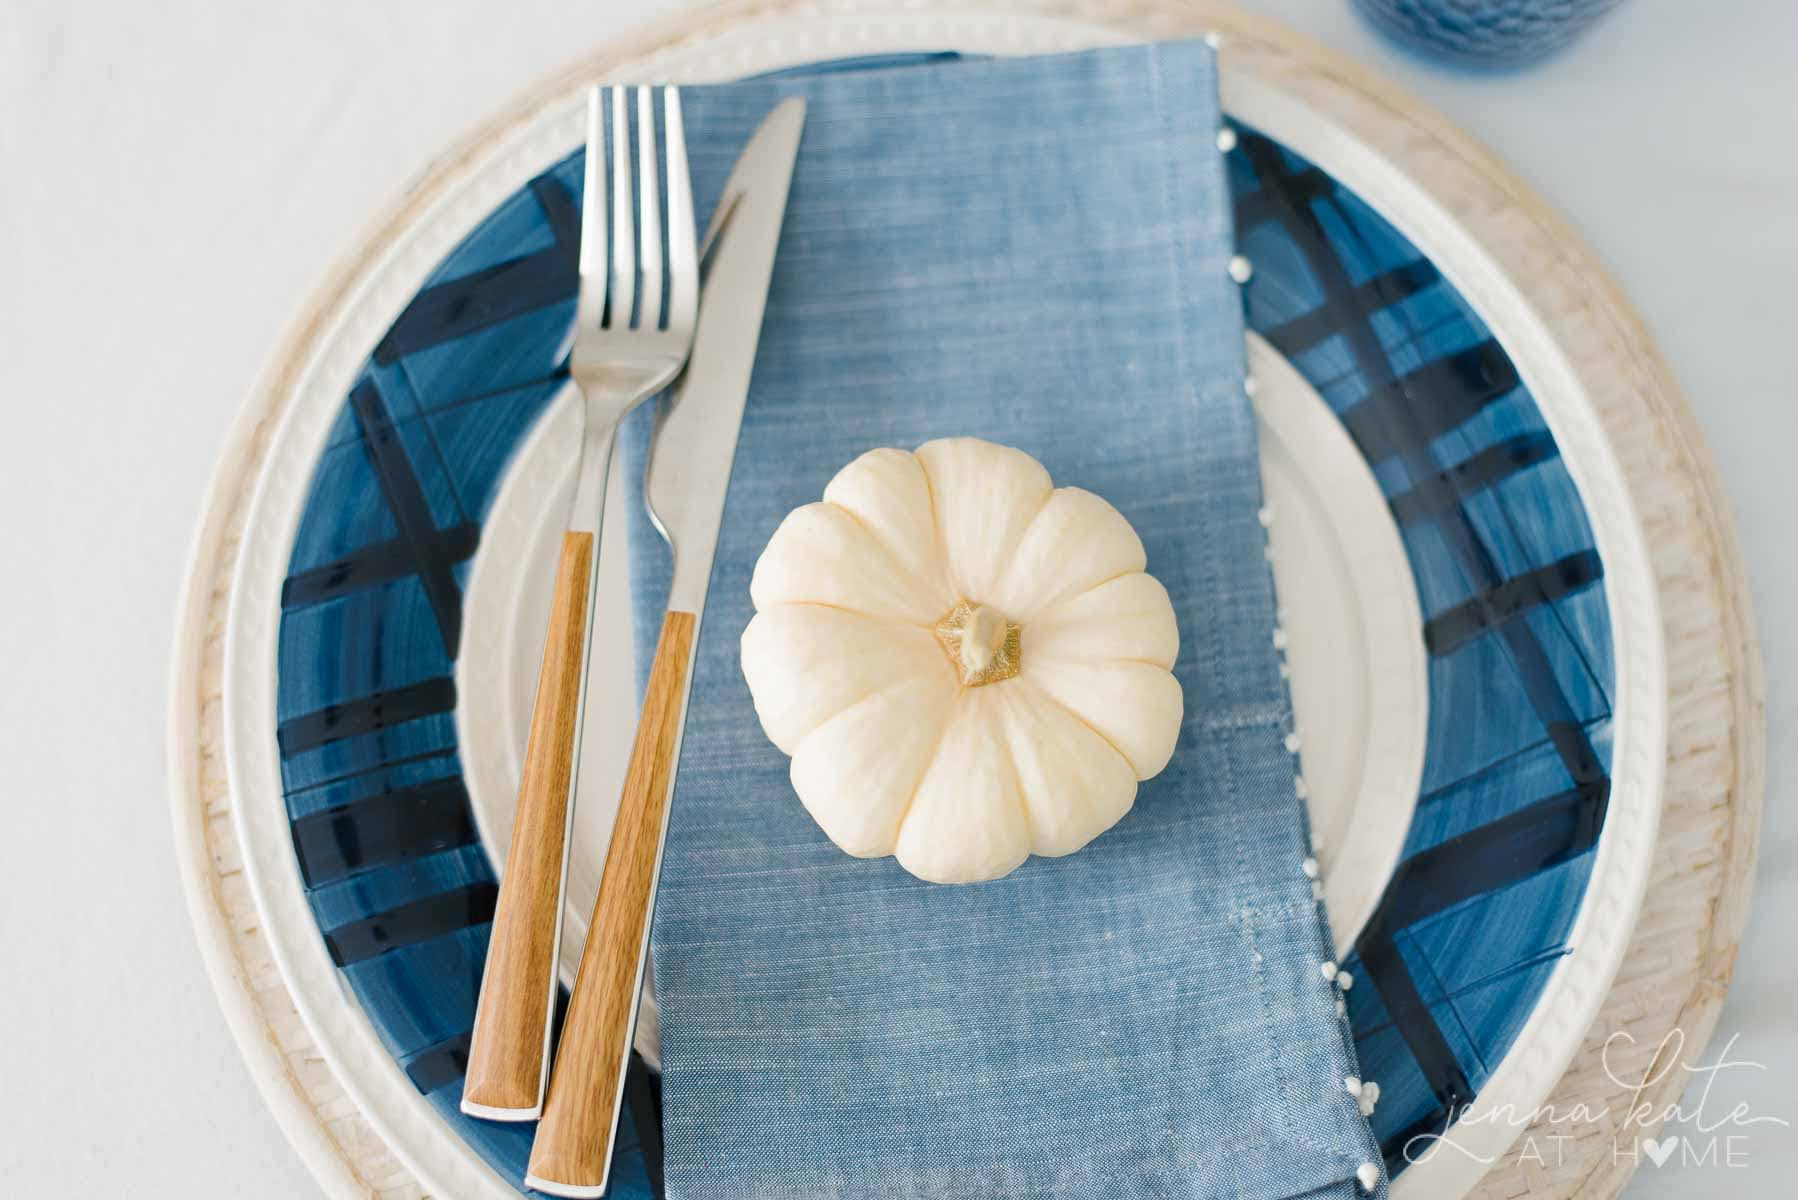 mini white pumpkin on a plate as part of a table setting inspired by nature